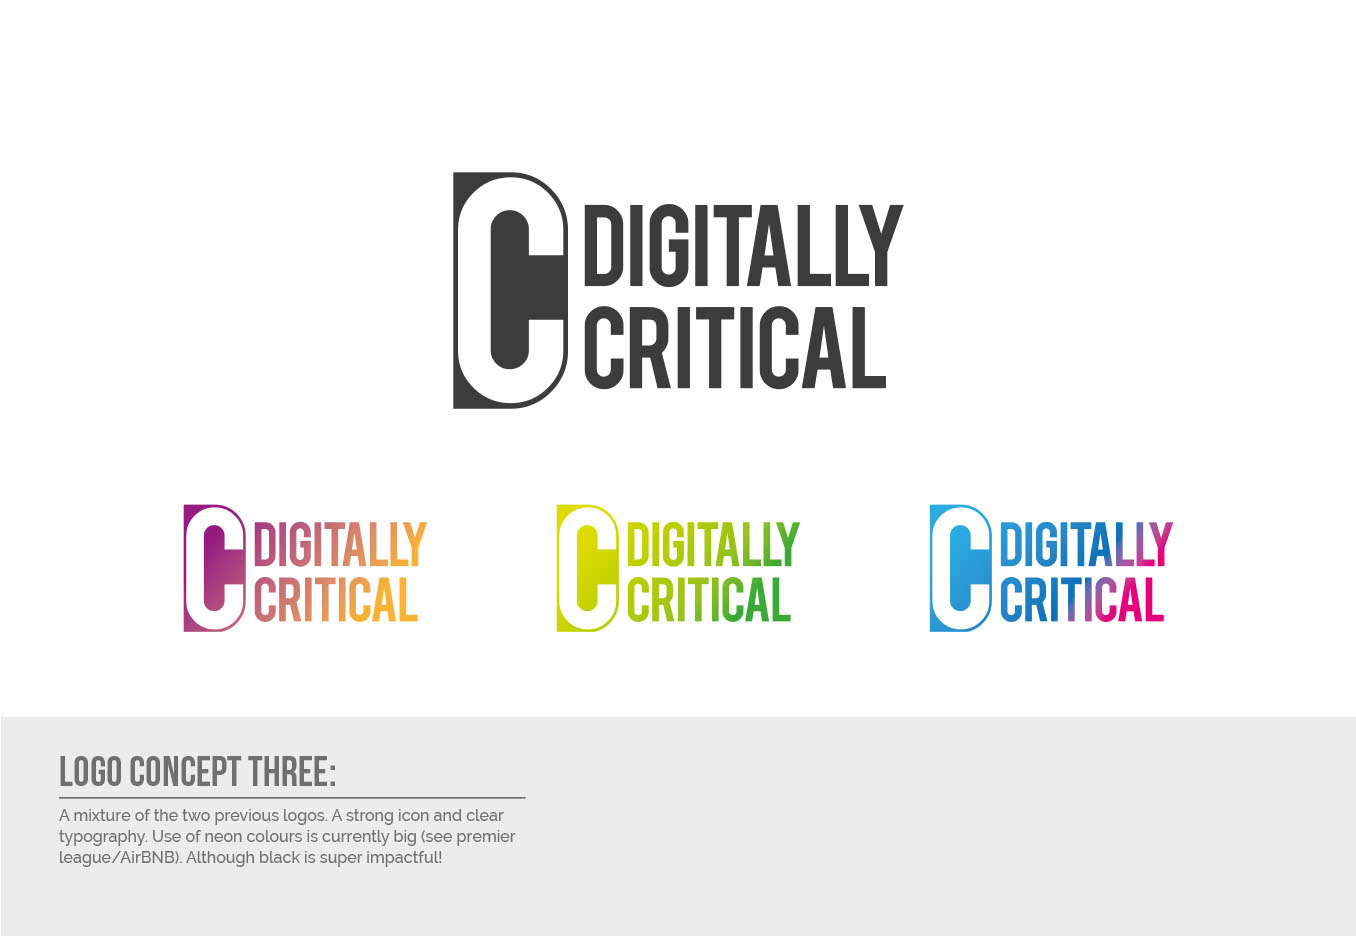 Digitally Critical Logo Design - Concept Three